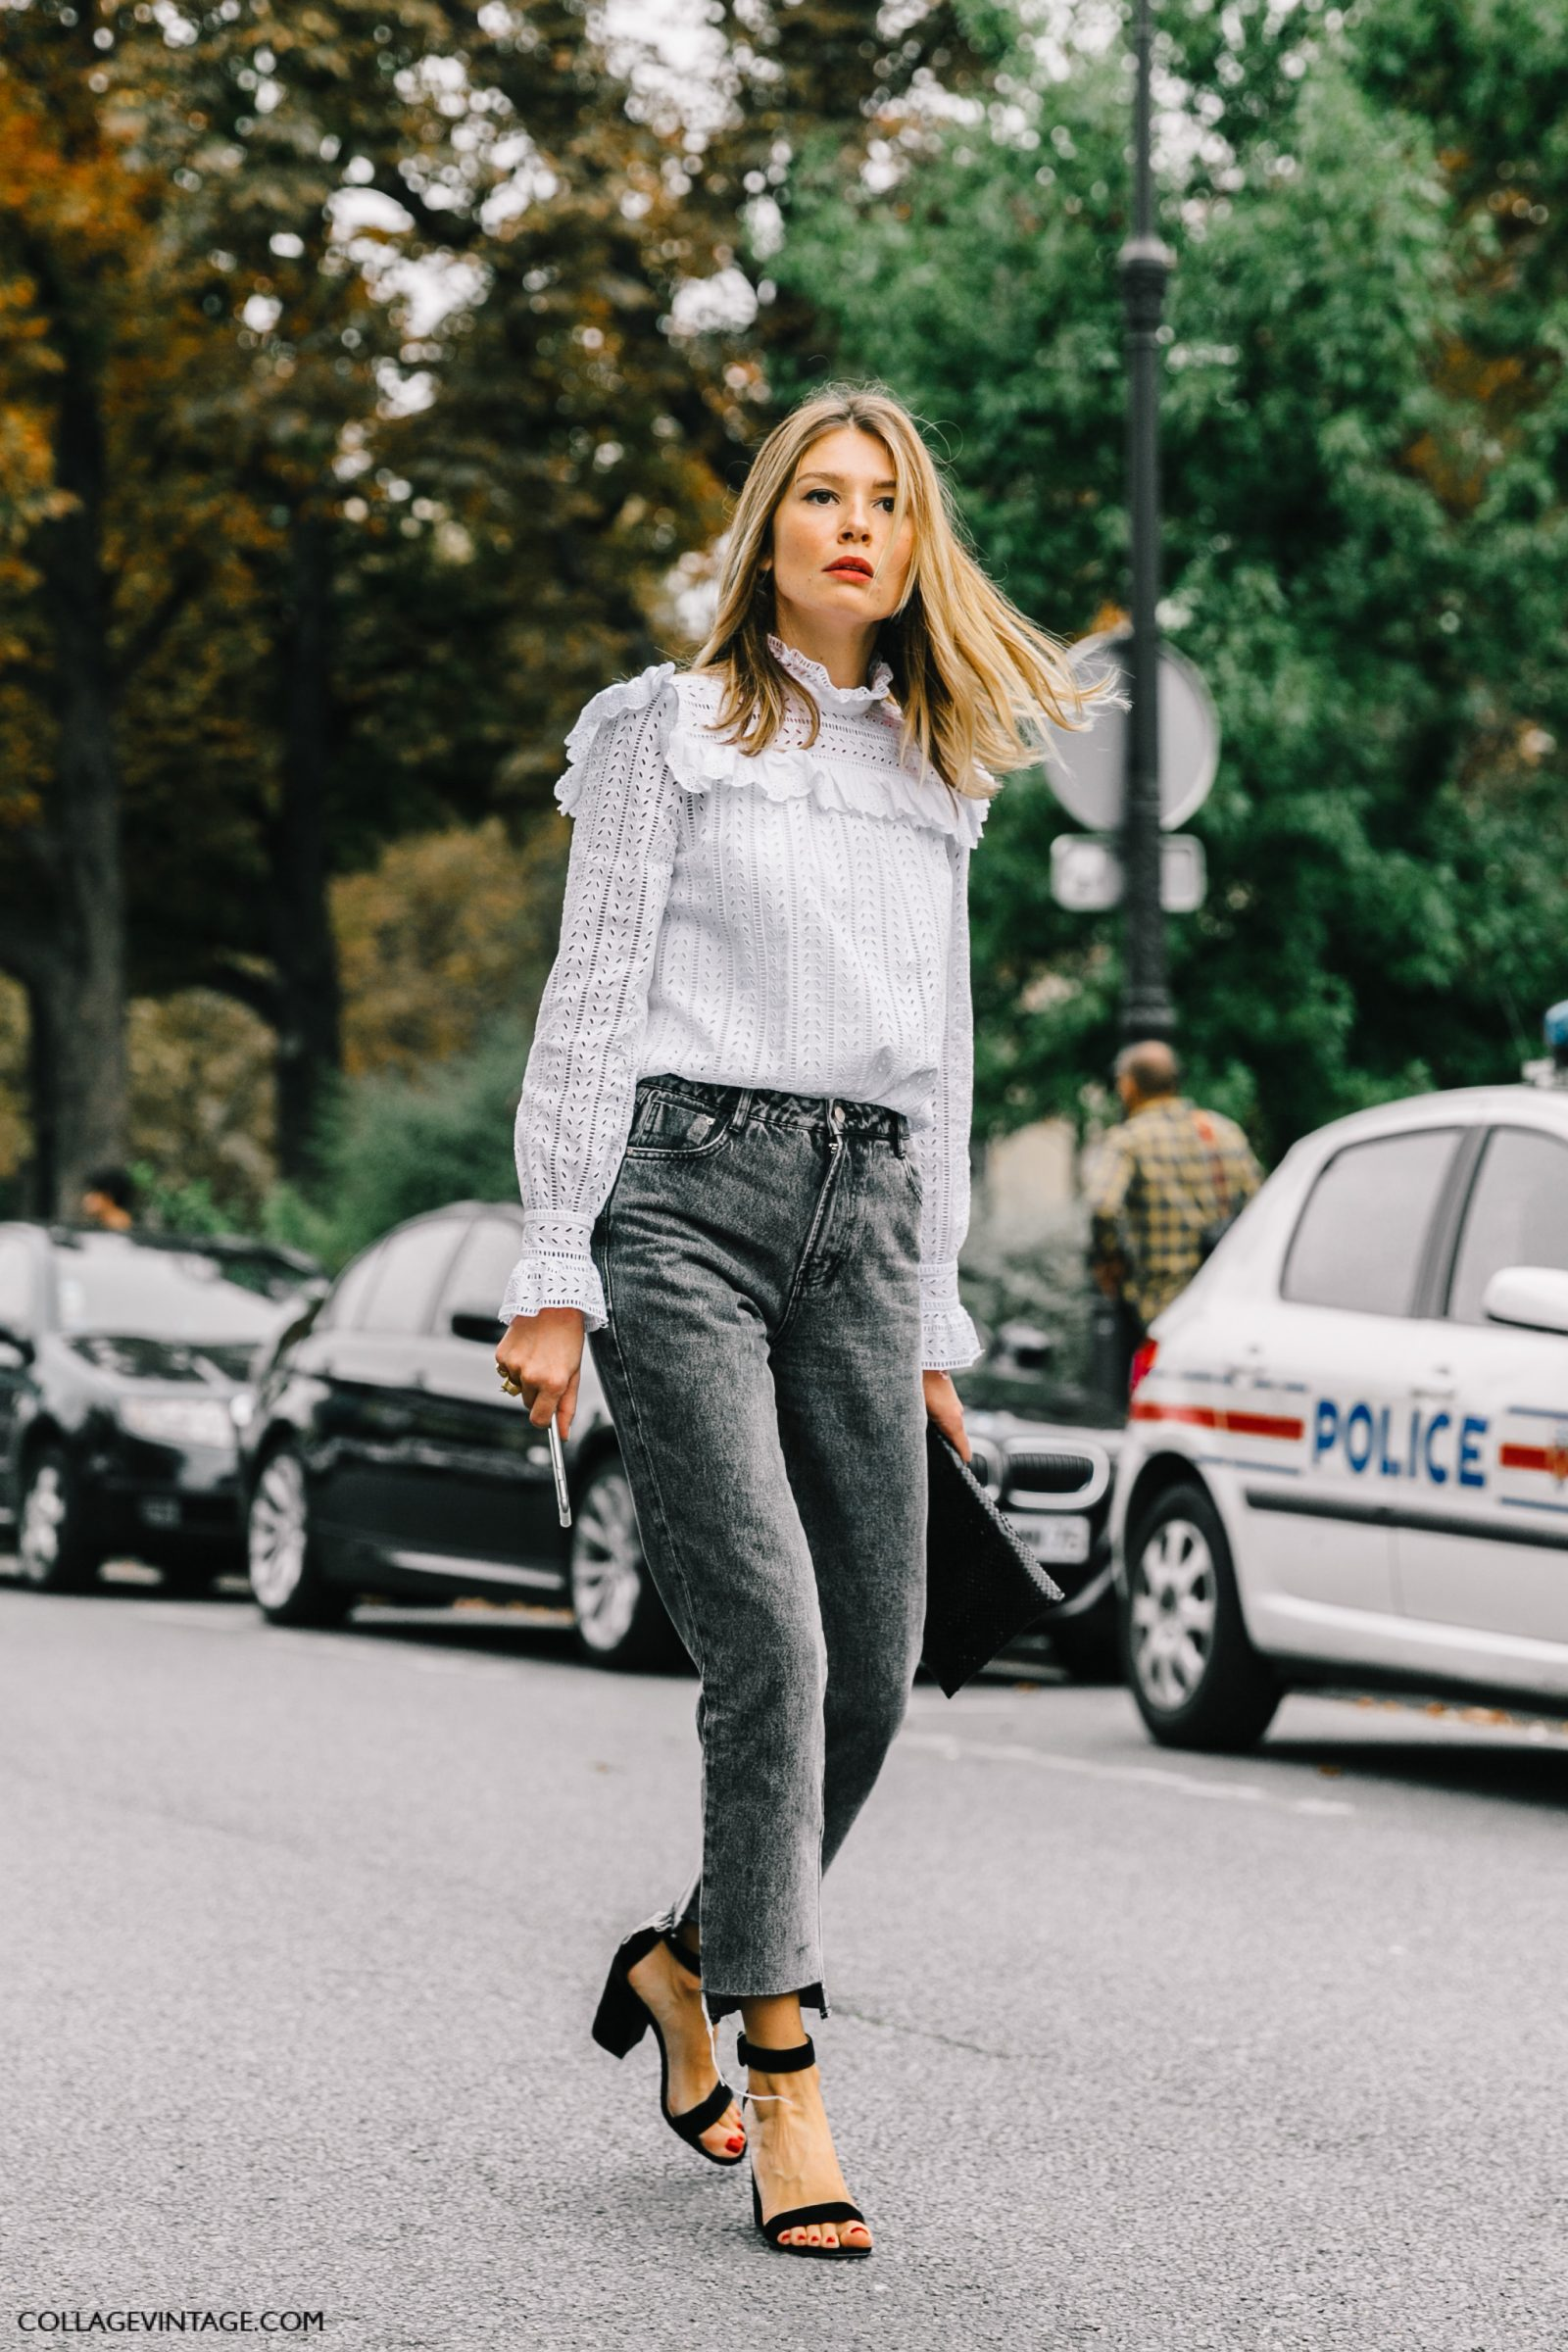 pfw-paris_fashion_week_ss17-street_style-outfits-collage_vintage-chloe-carven-balmain-barbara_bui-92